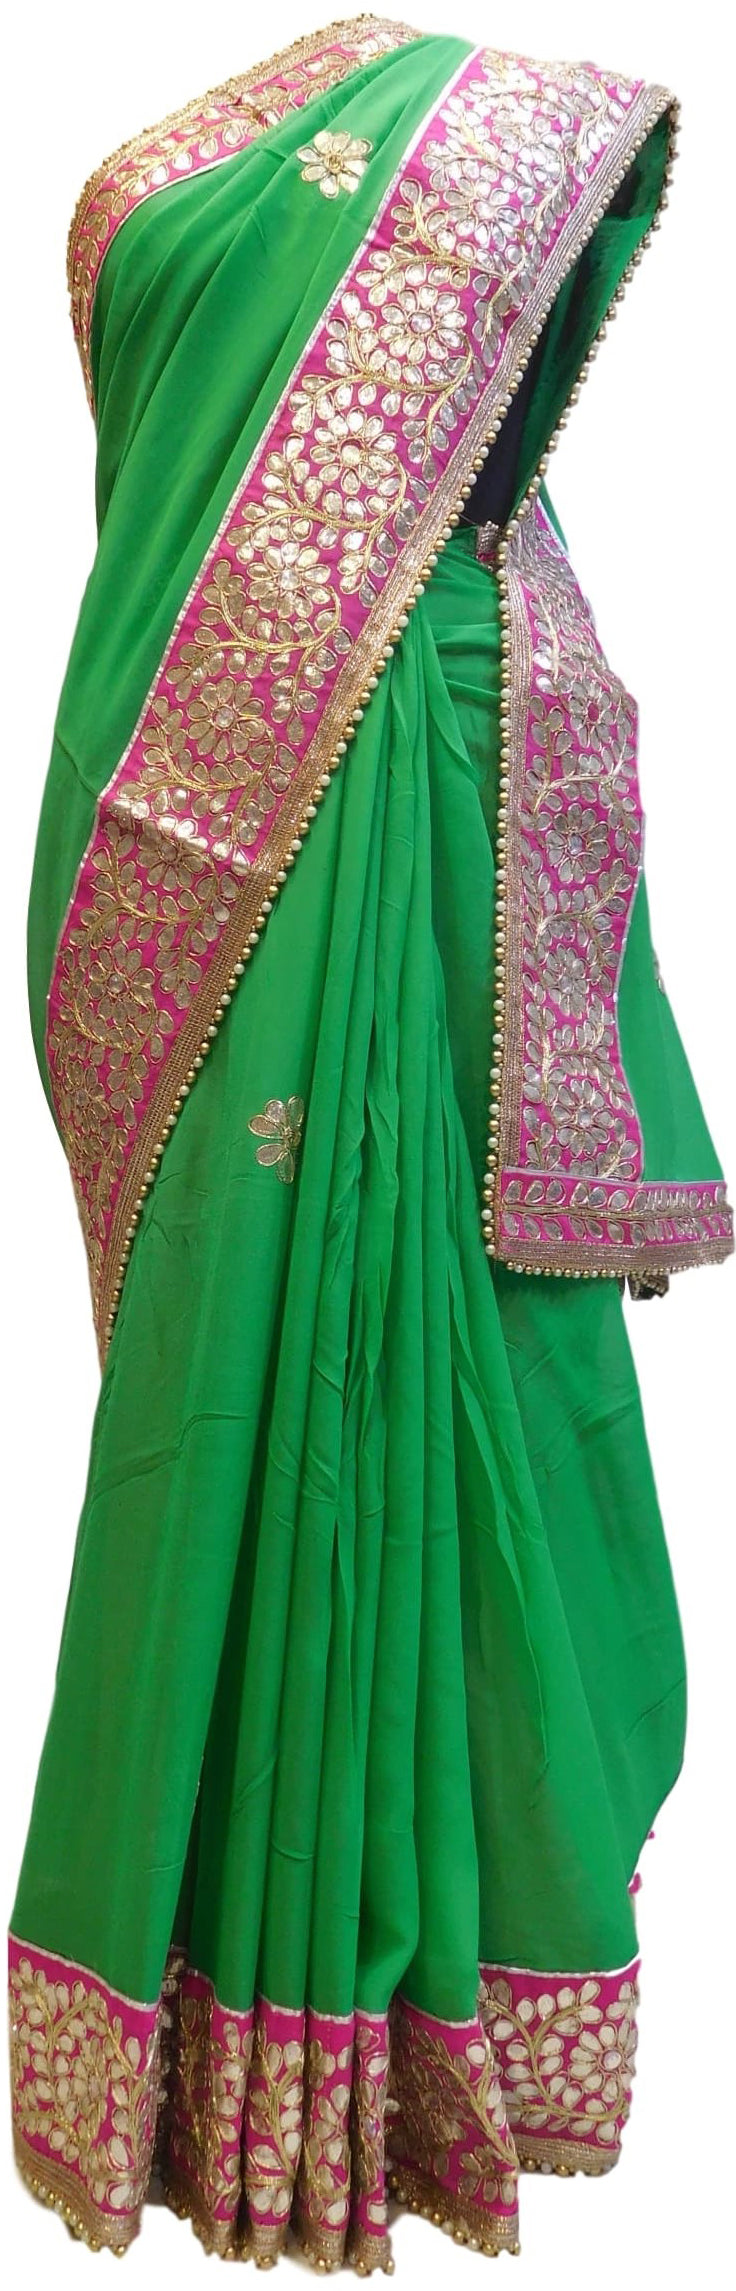 Bollywood Style Green Gota Saree With Pink Border With Pearl Lace Sari SAC563